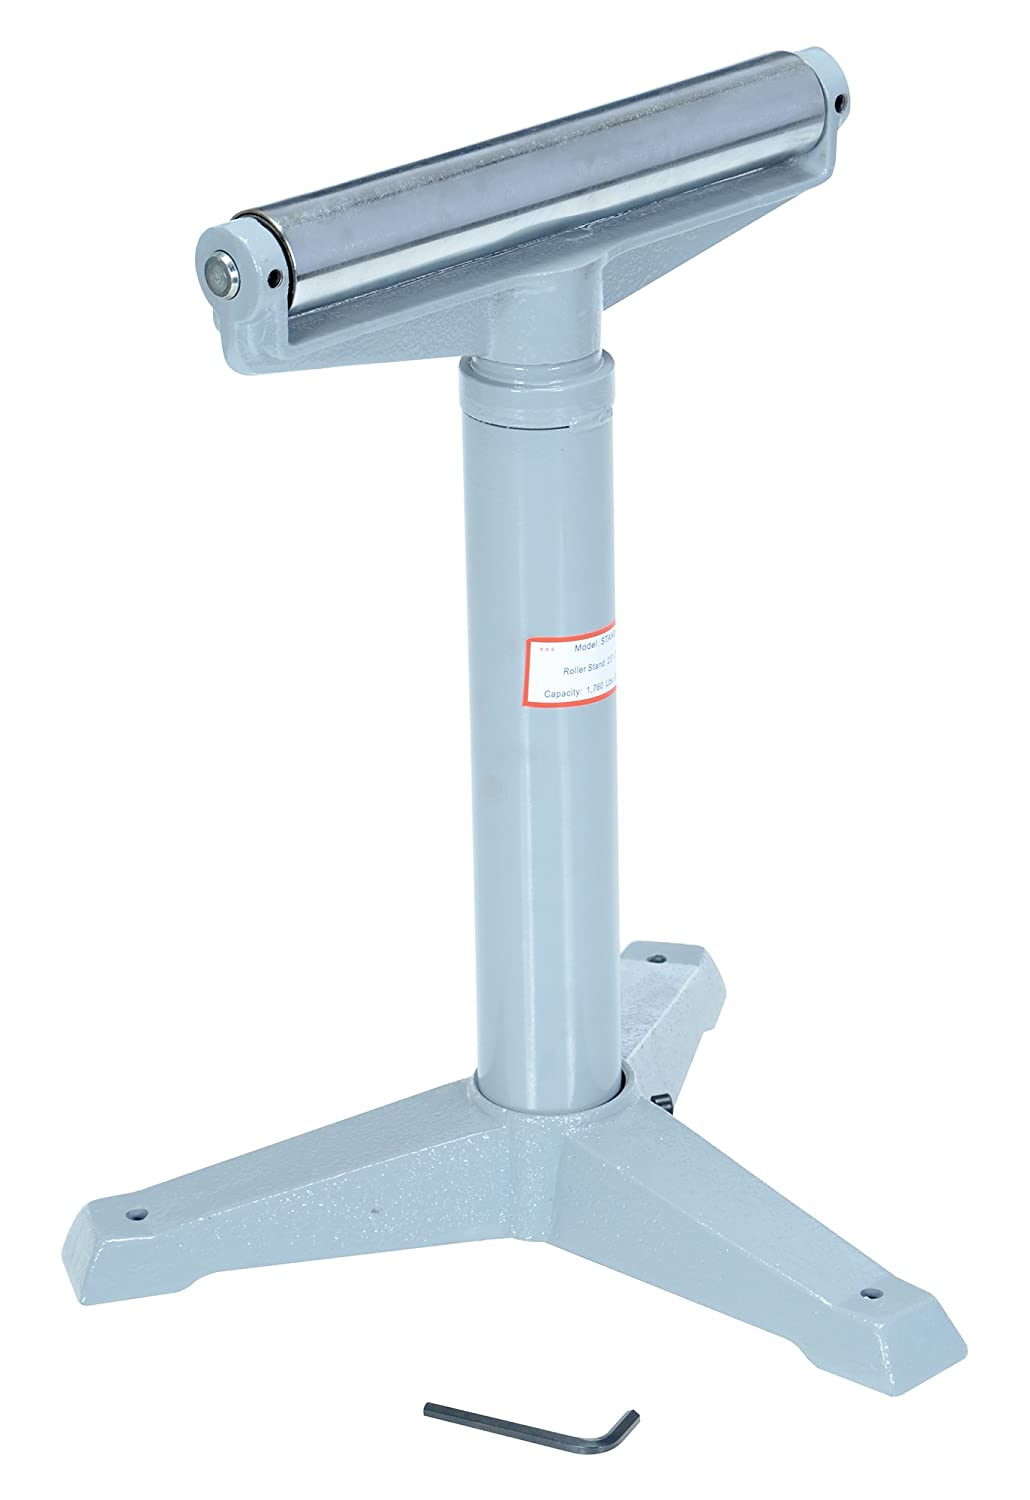 Vestil STAND H 14 Horizontal Deluxe Roller Stand 23 38 1 2 Height 1760 lbs Capacity